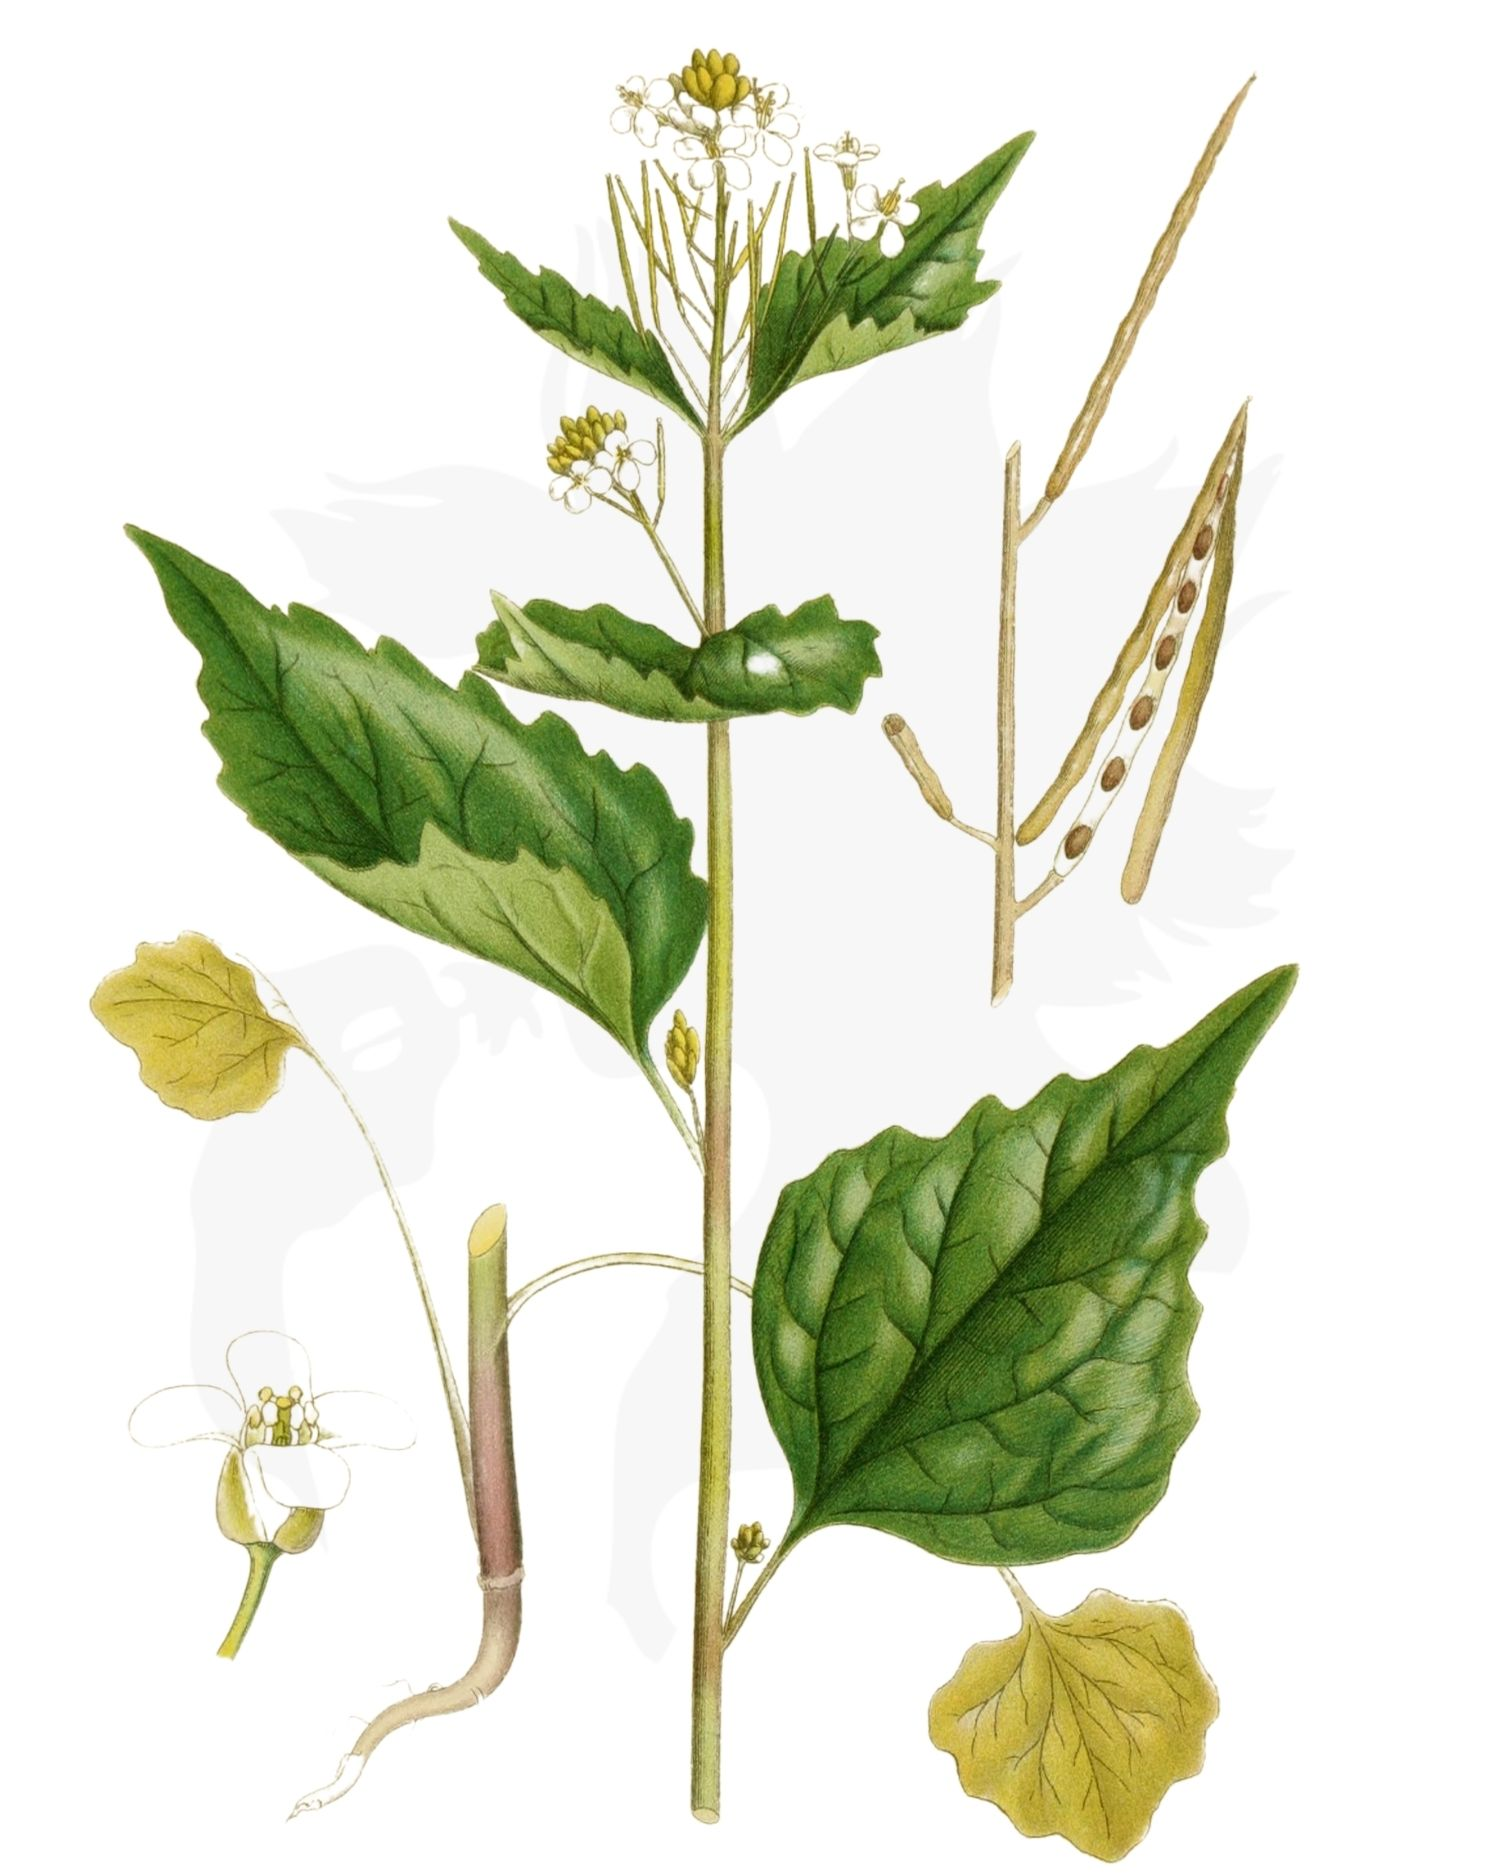 Garlic Mustard - A Foraging Guide to Its Food, Medicine and Other Uses